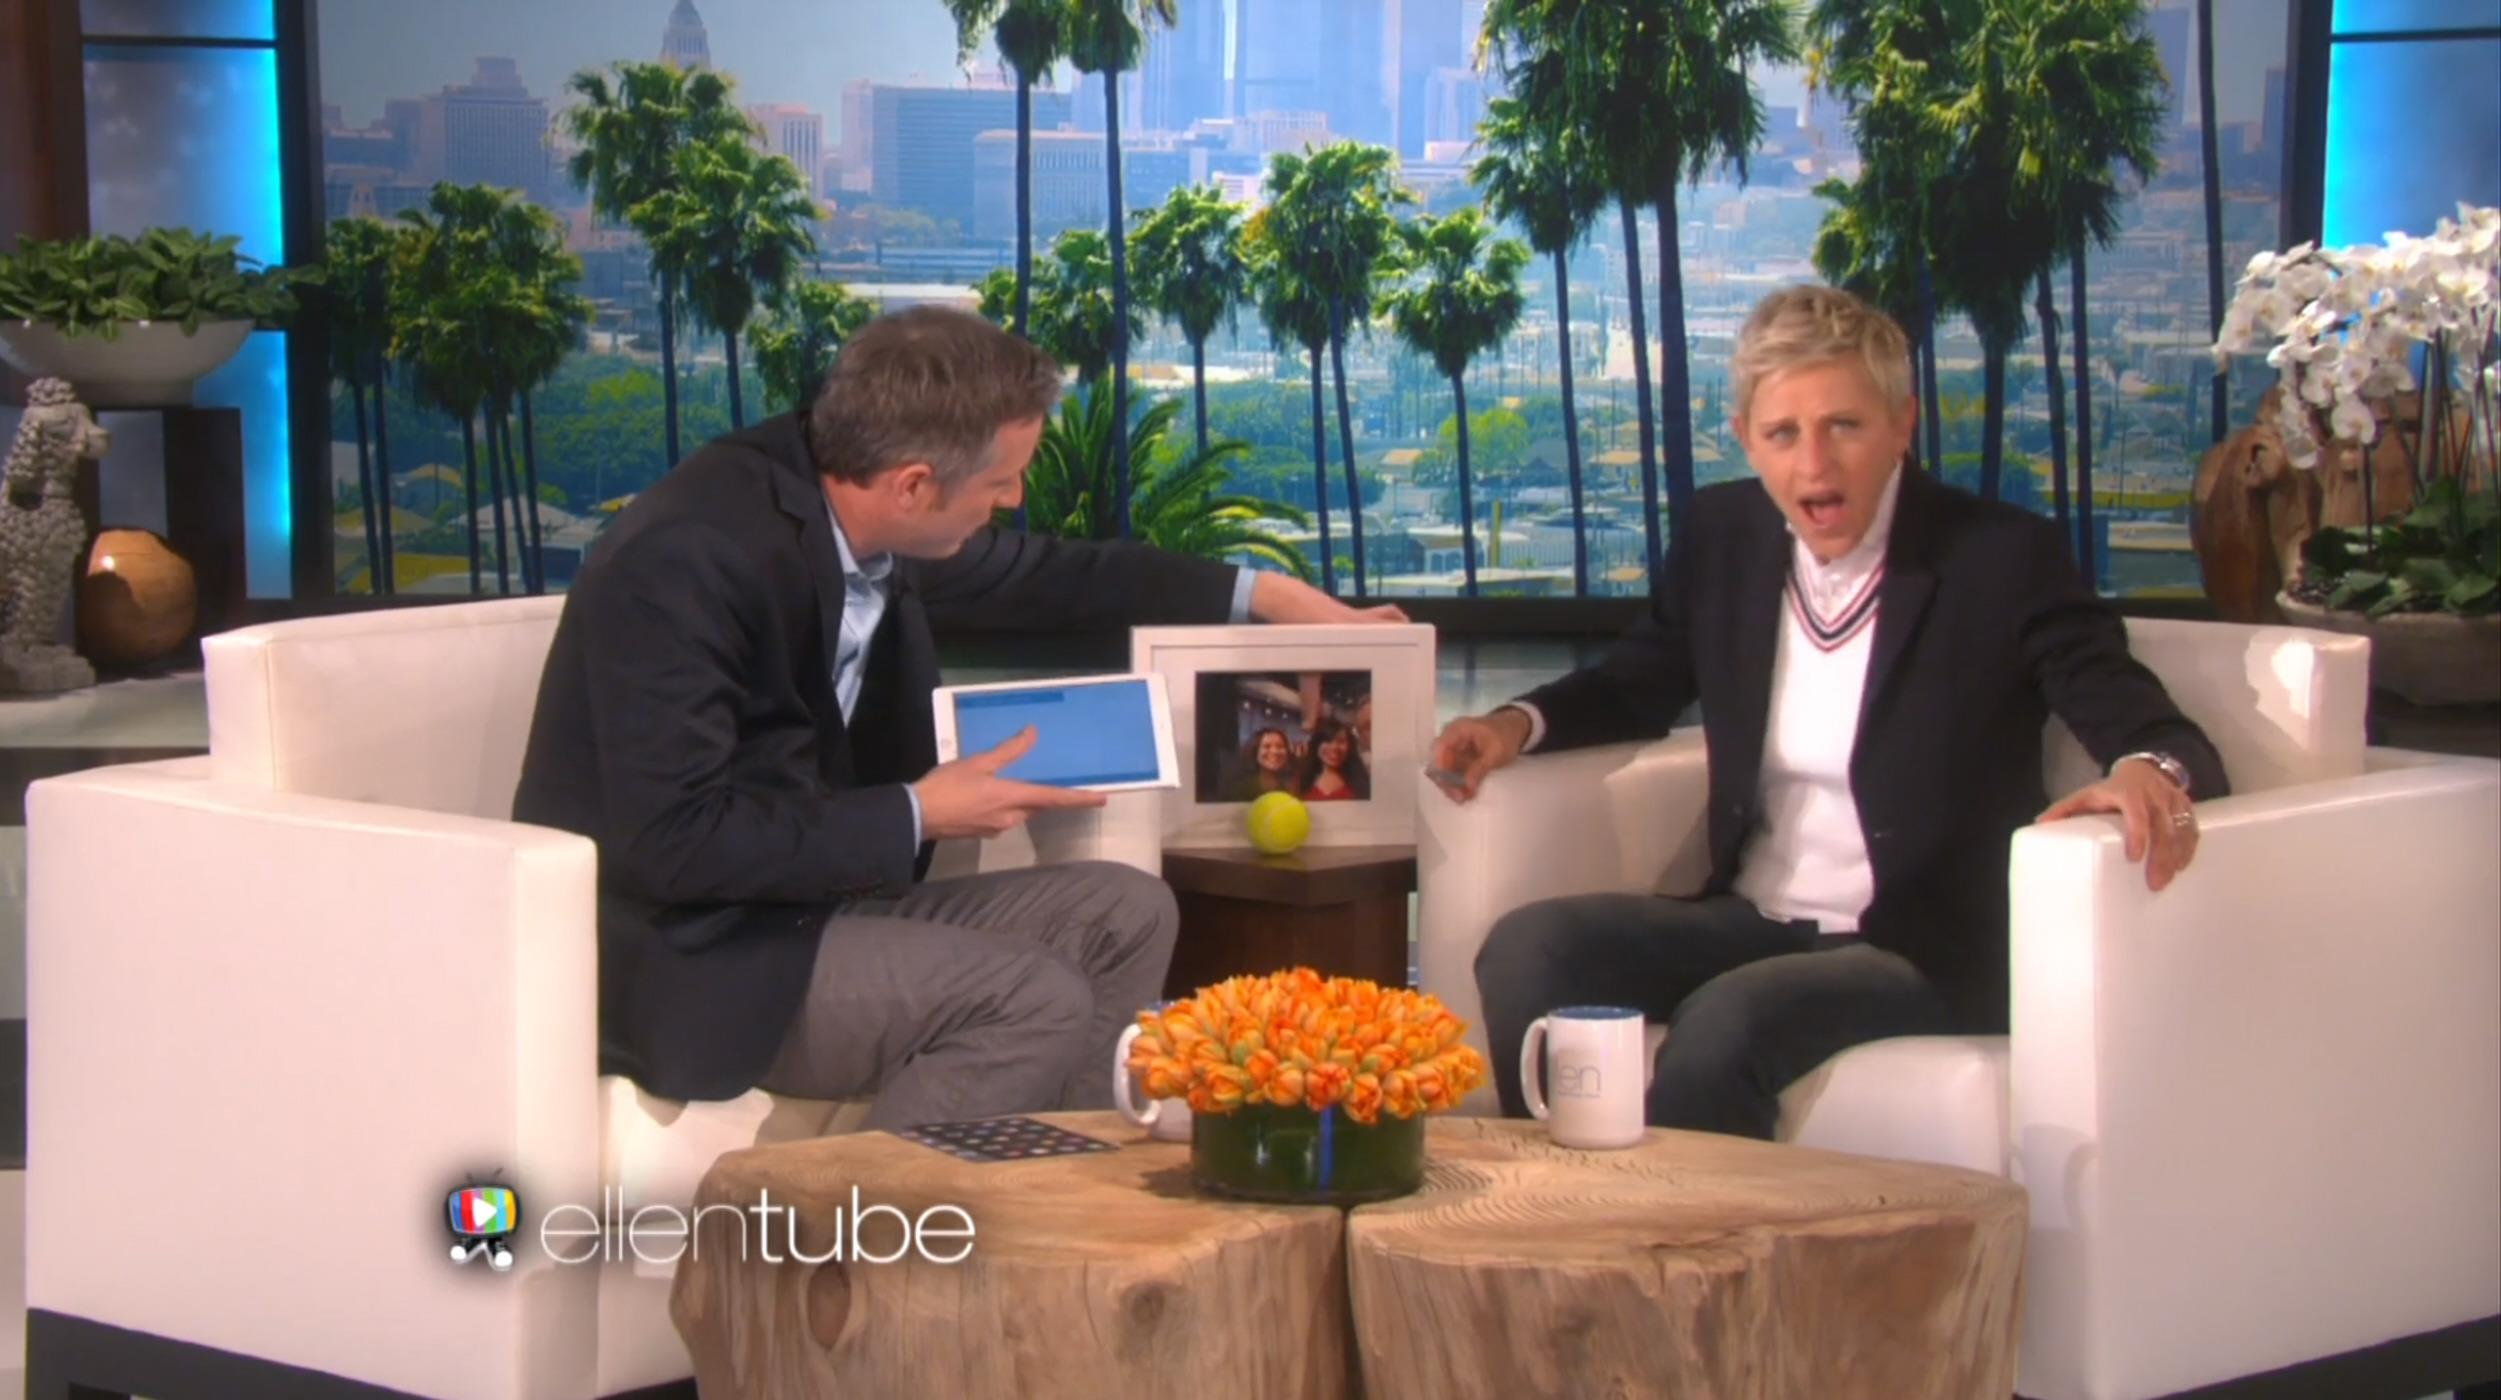 Swell Amazing Magician Stuns Ellen Degeneres With His Ipad Trickery Gamerscity Chair Design For Home Gamerscityorg